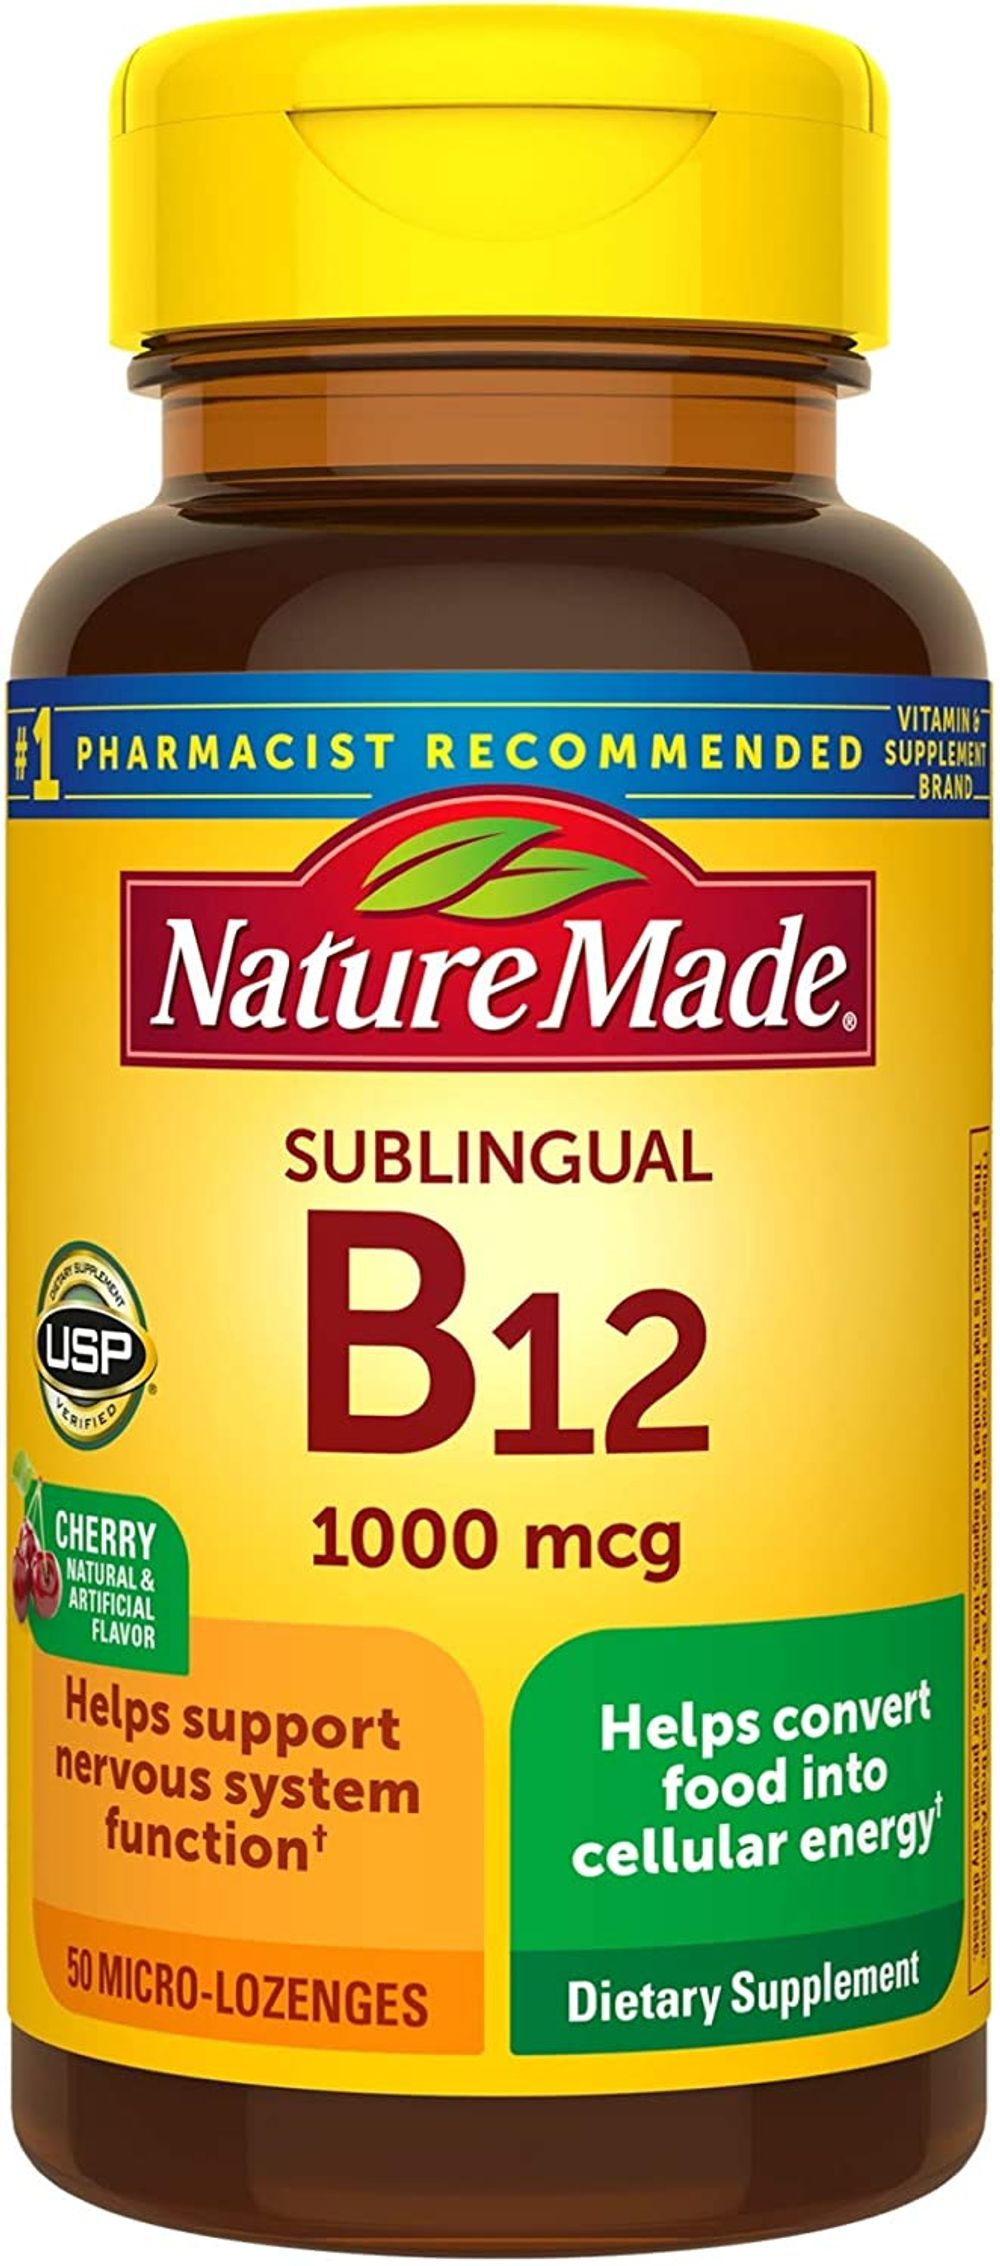 Nature Made Sublingual Vitamin B12 1000 mcg Micro-Lozenges, 50 Count for Metabolic Health† (Pack of 3)